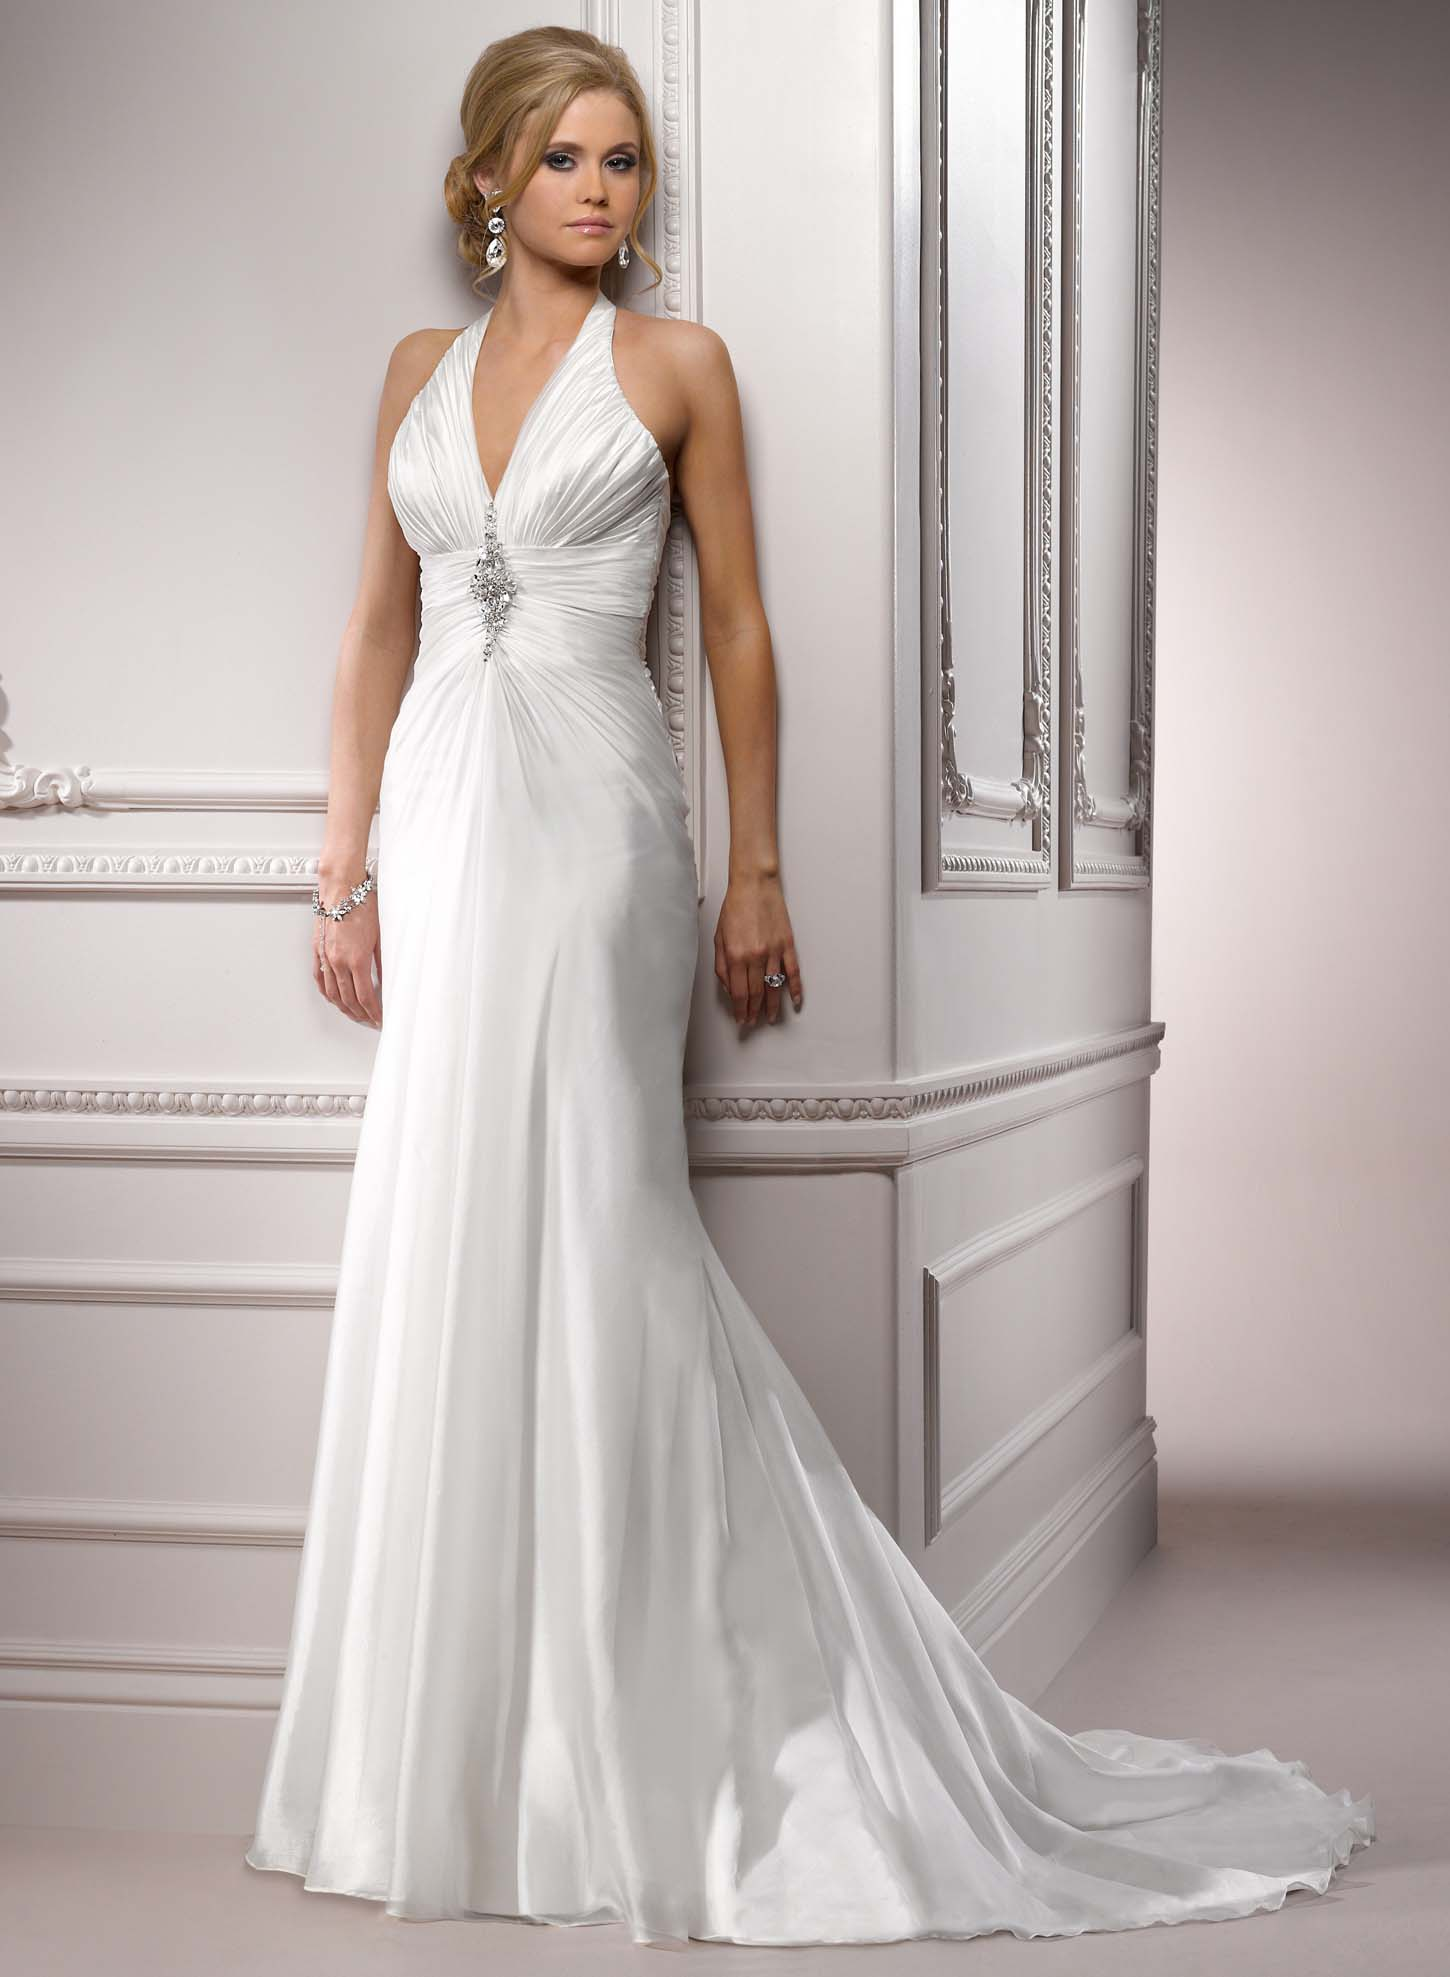 march 9 2015 at 1450 1977 in wonderful satin wedding dresses